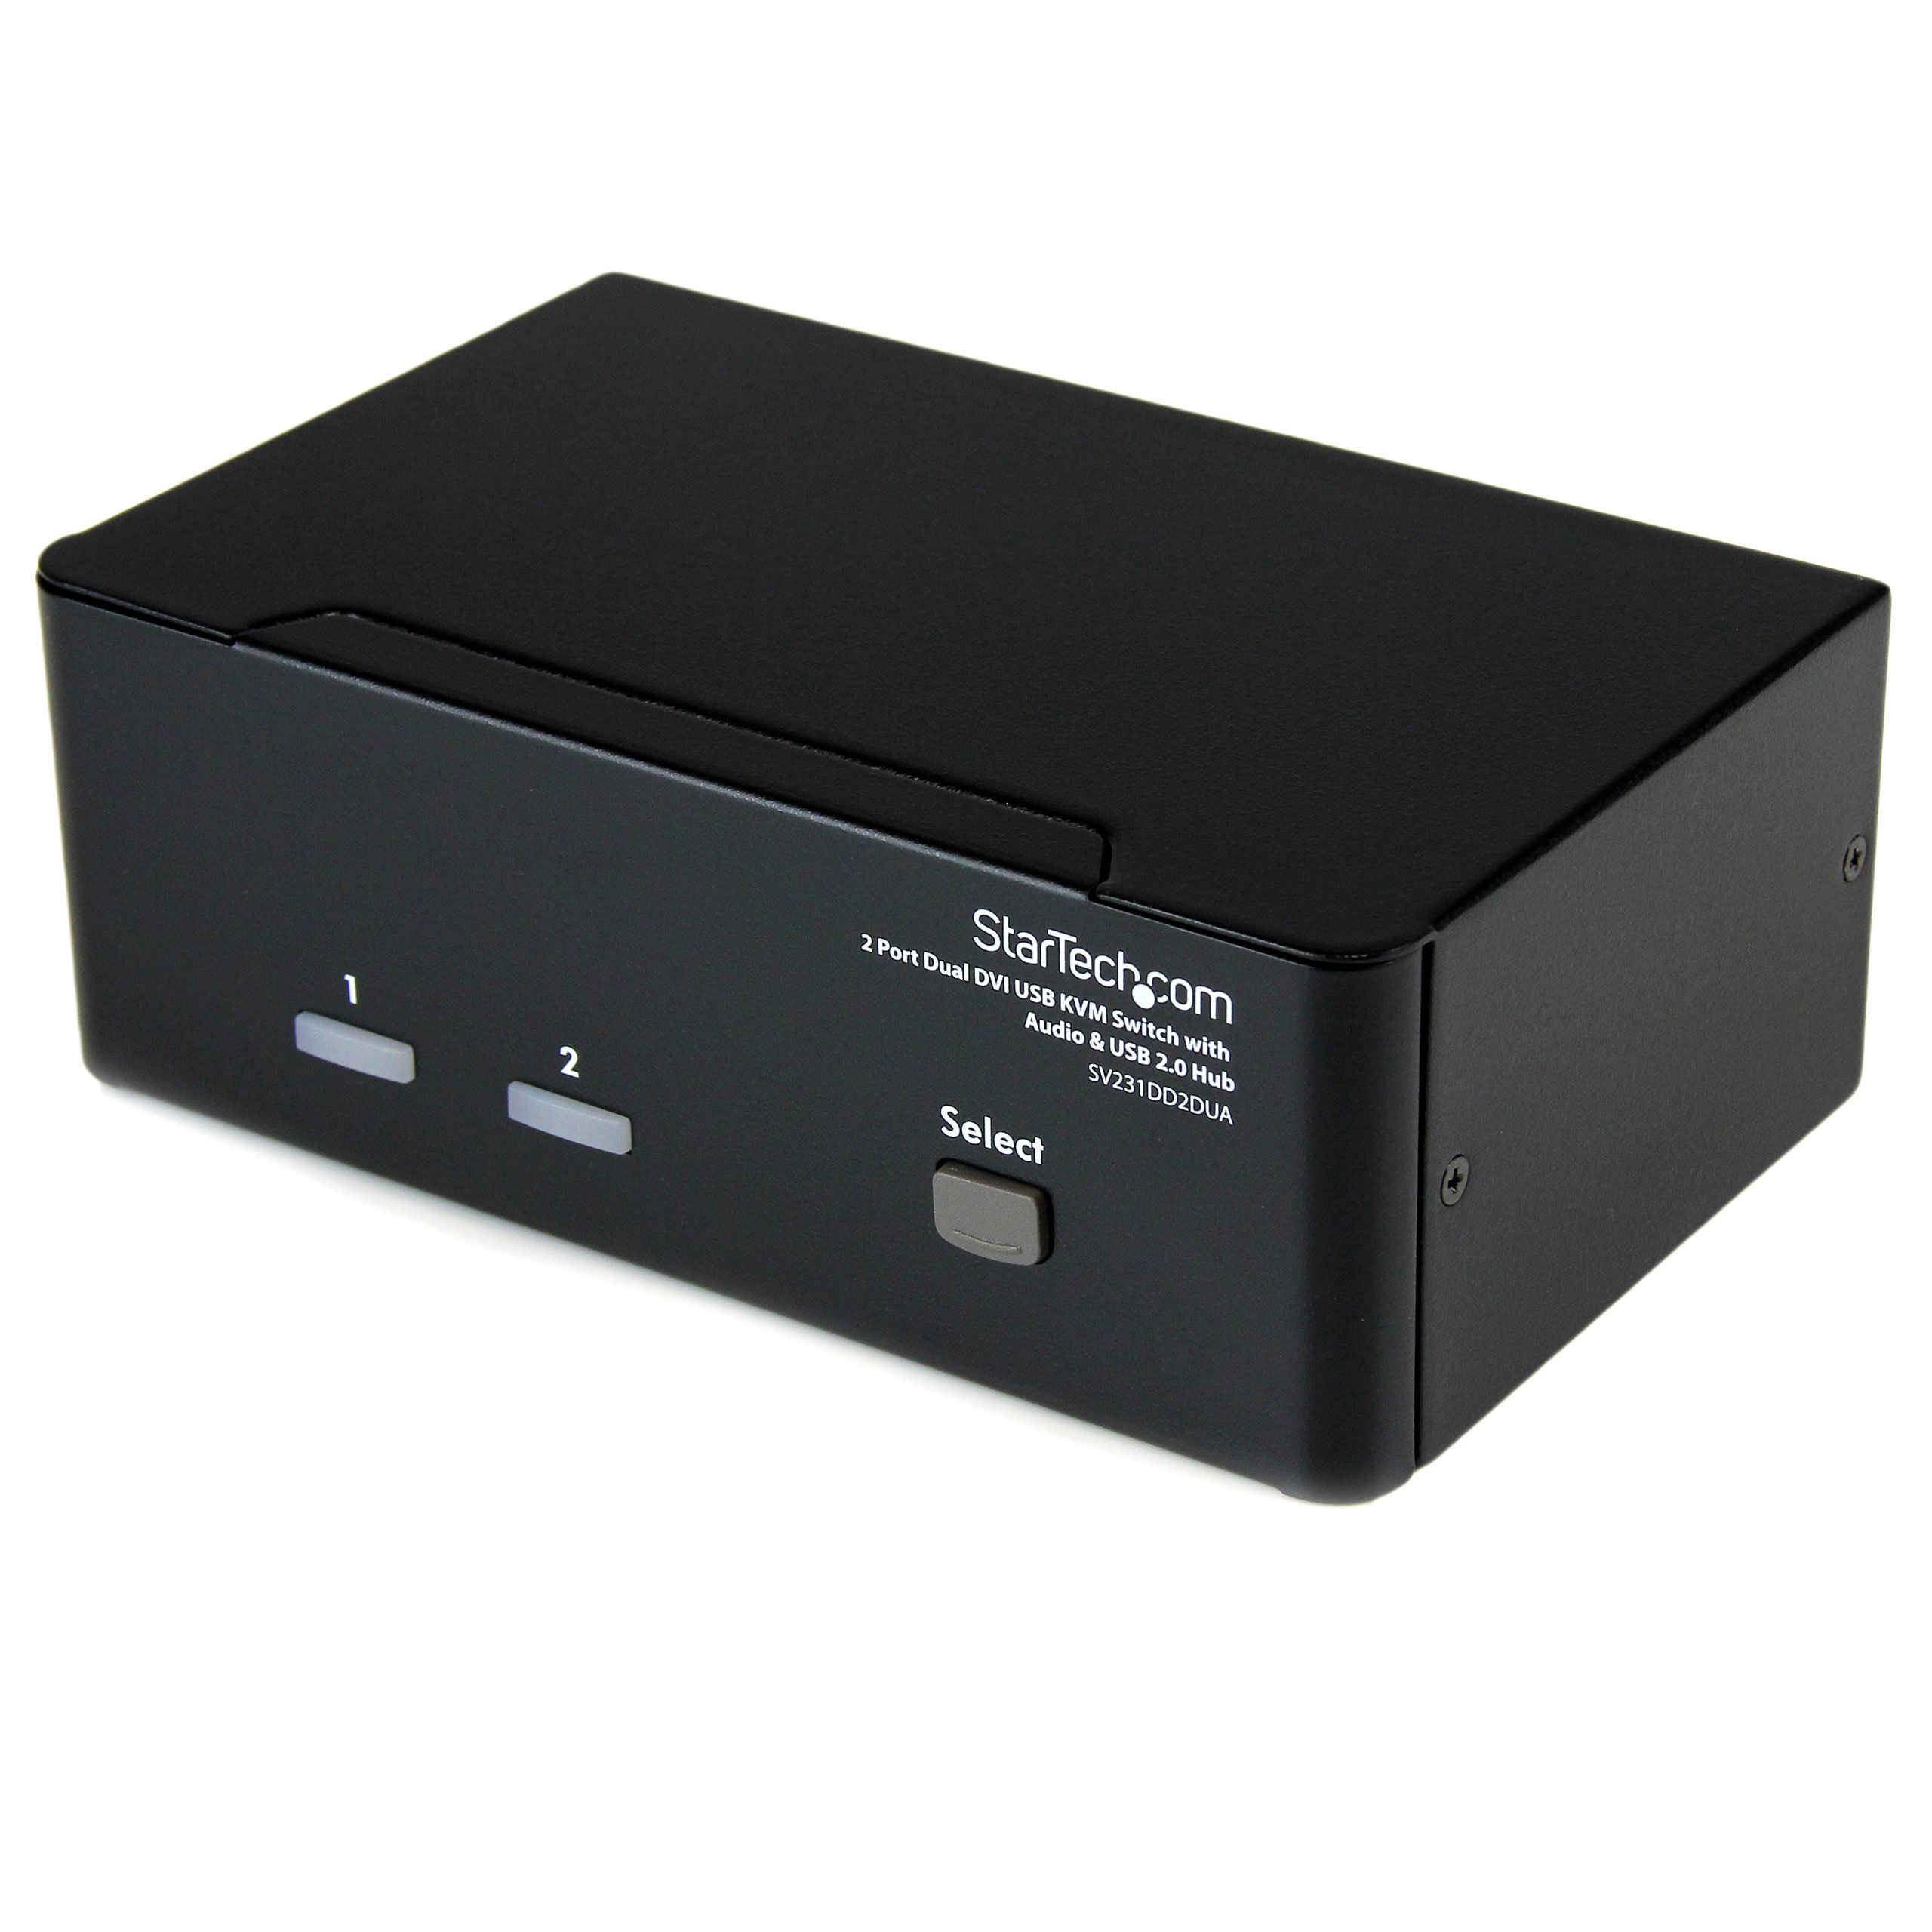 StarTech.com 2 Port Dual DVI USB KVM Switch with Audio and USB 2.0 Hub (SV231DD2DUA)